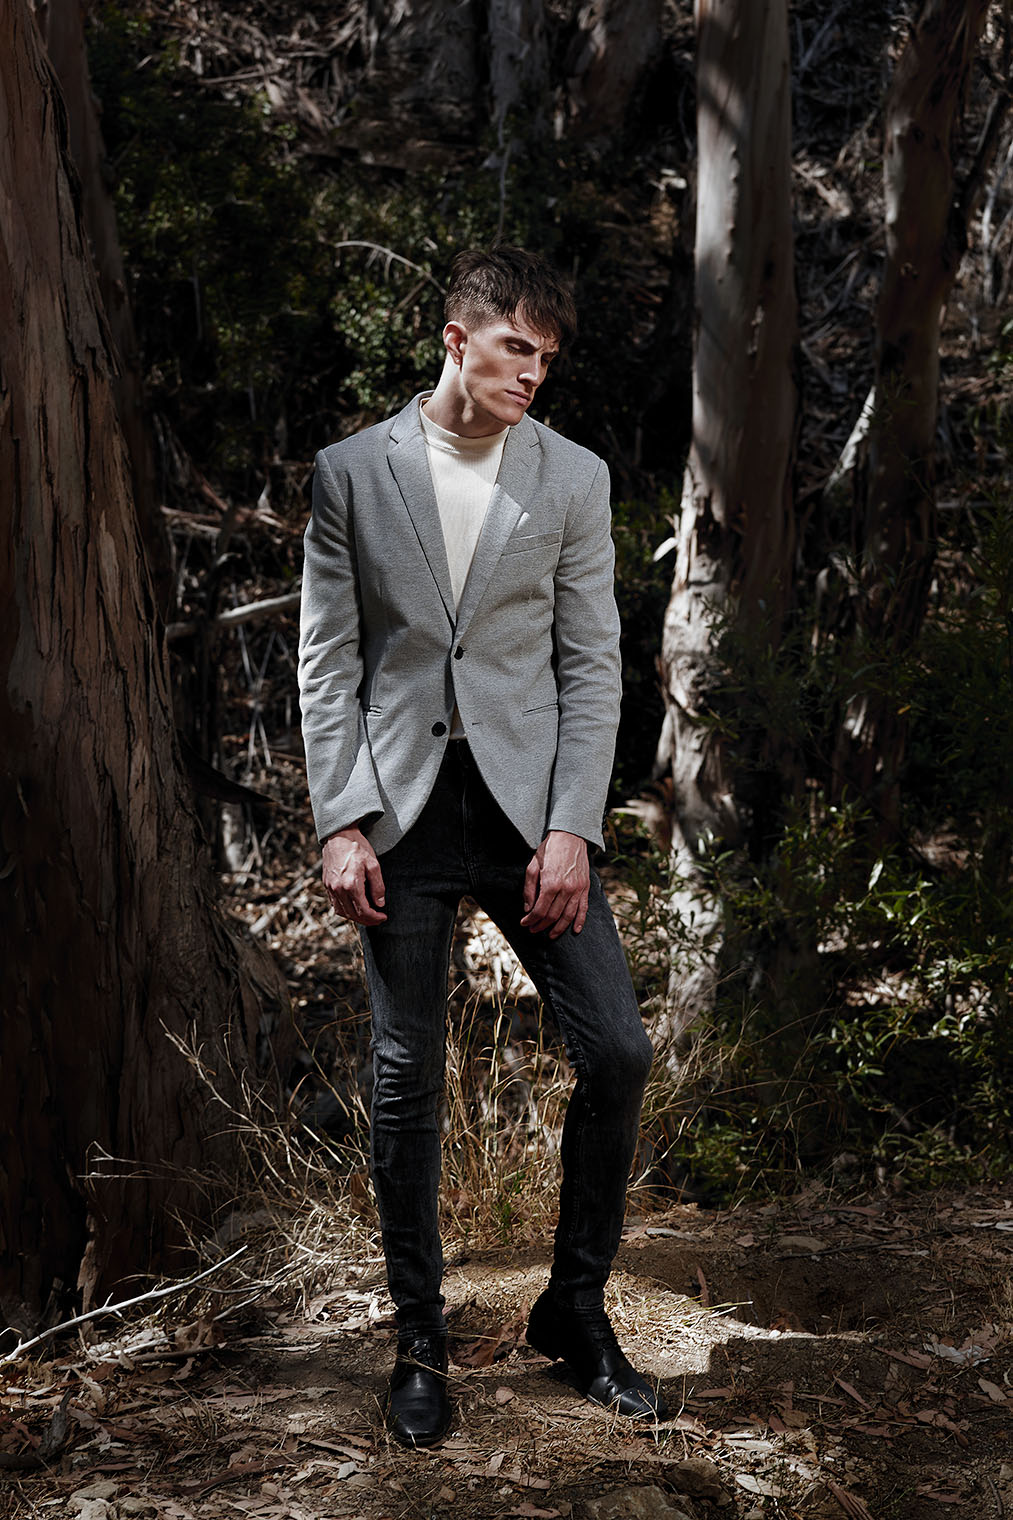 man wearing dinner jacket in forest in mensstyle fashion shoot in California